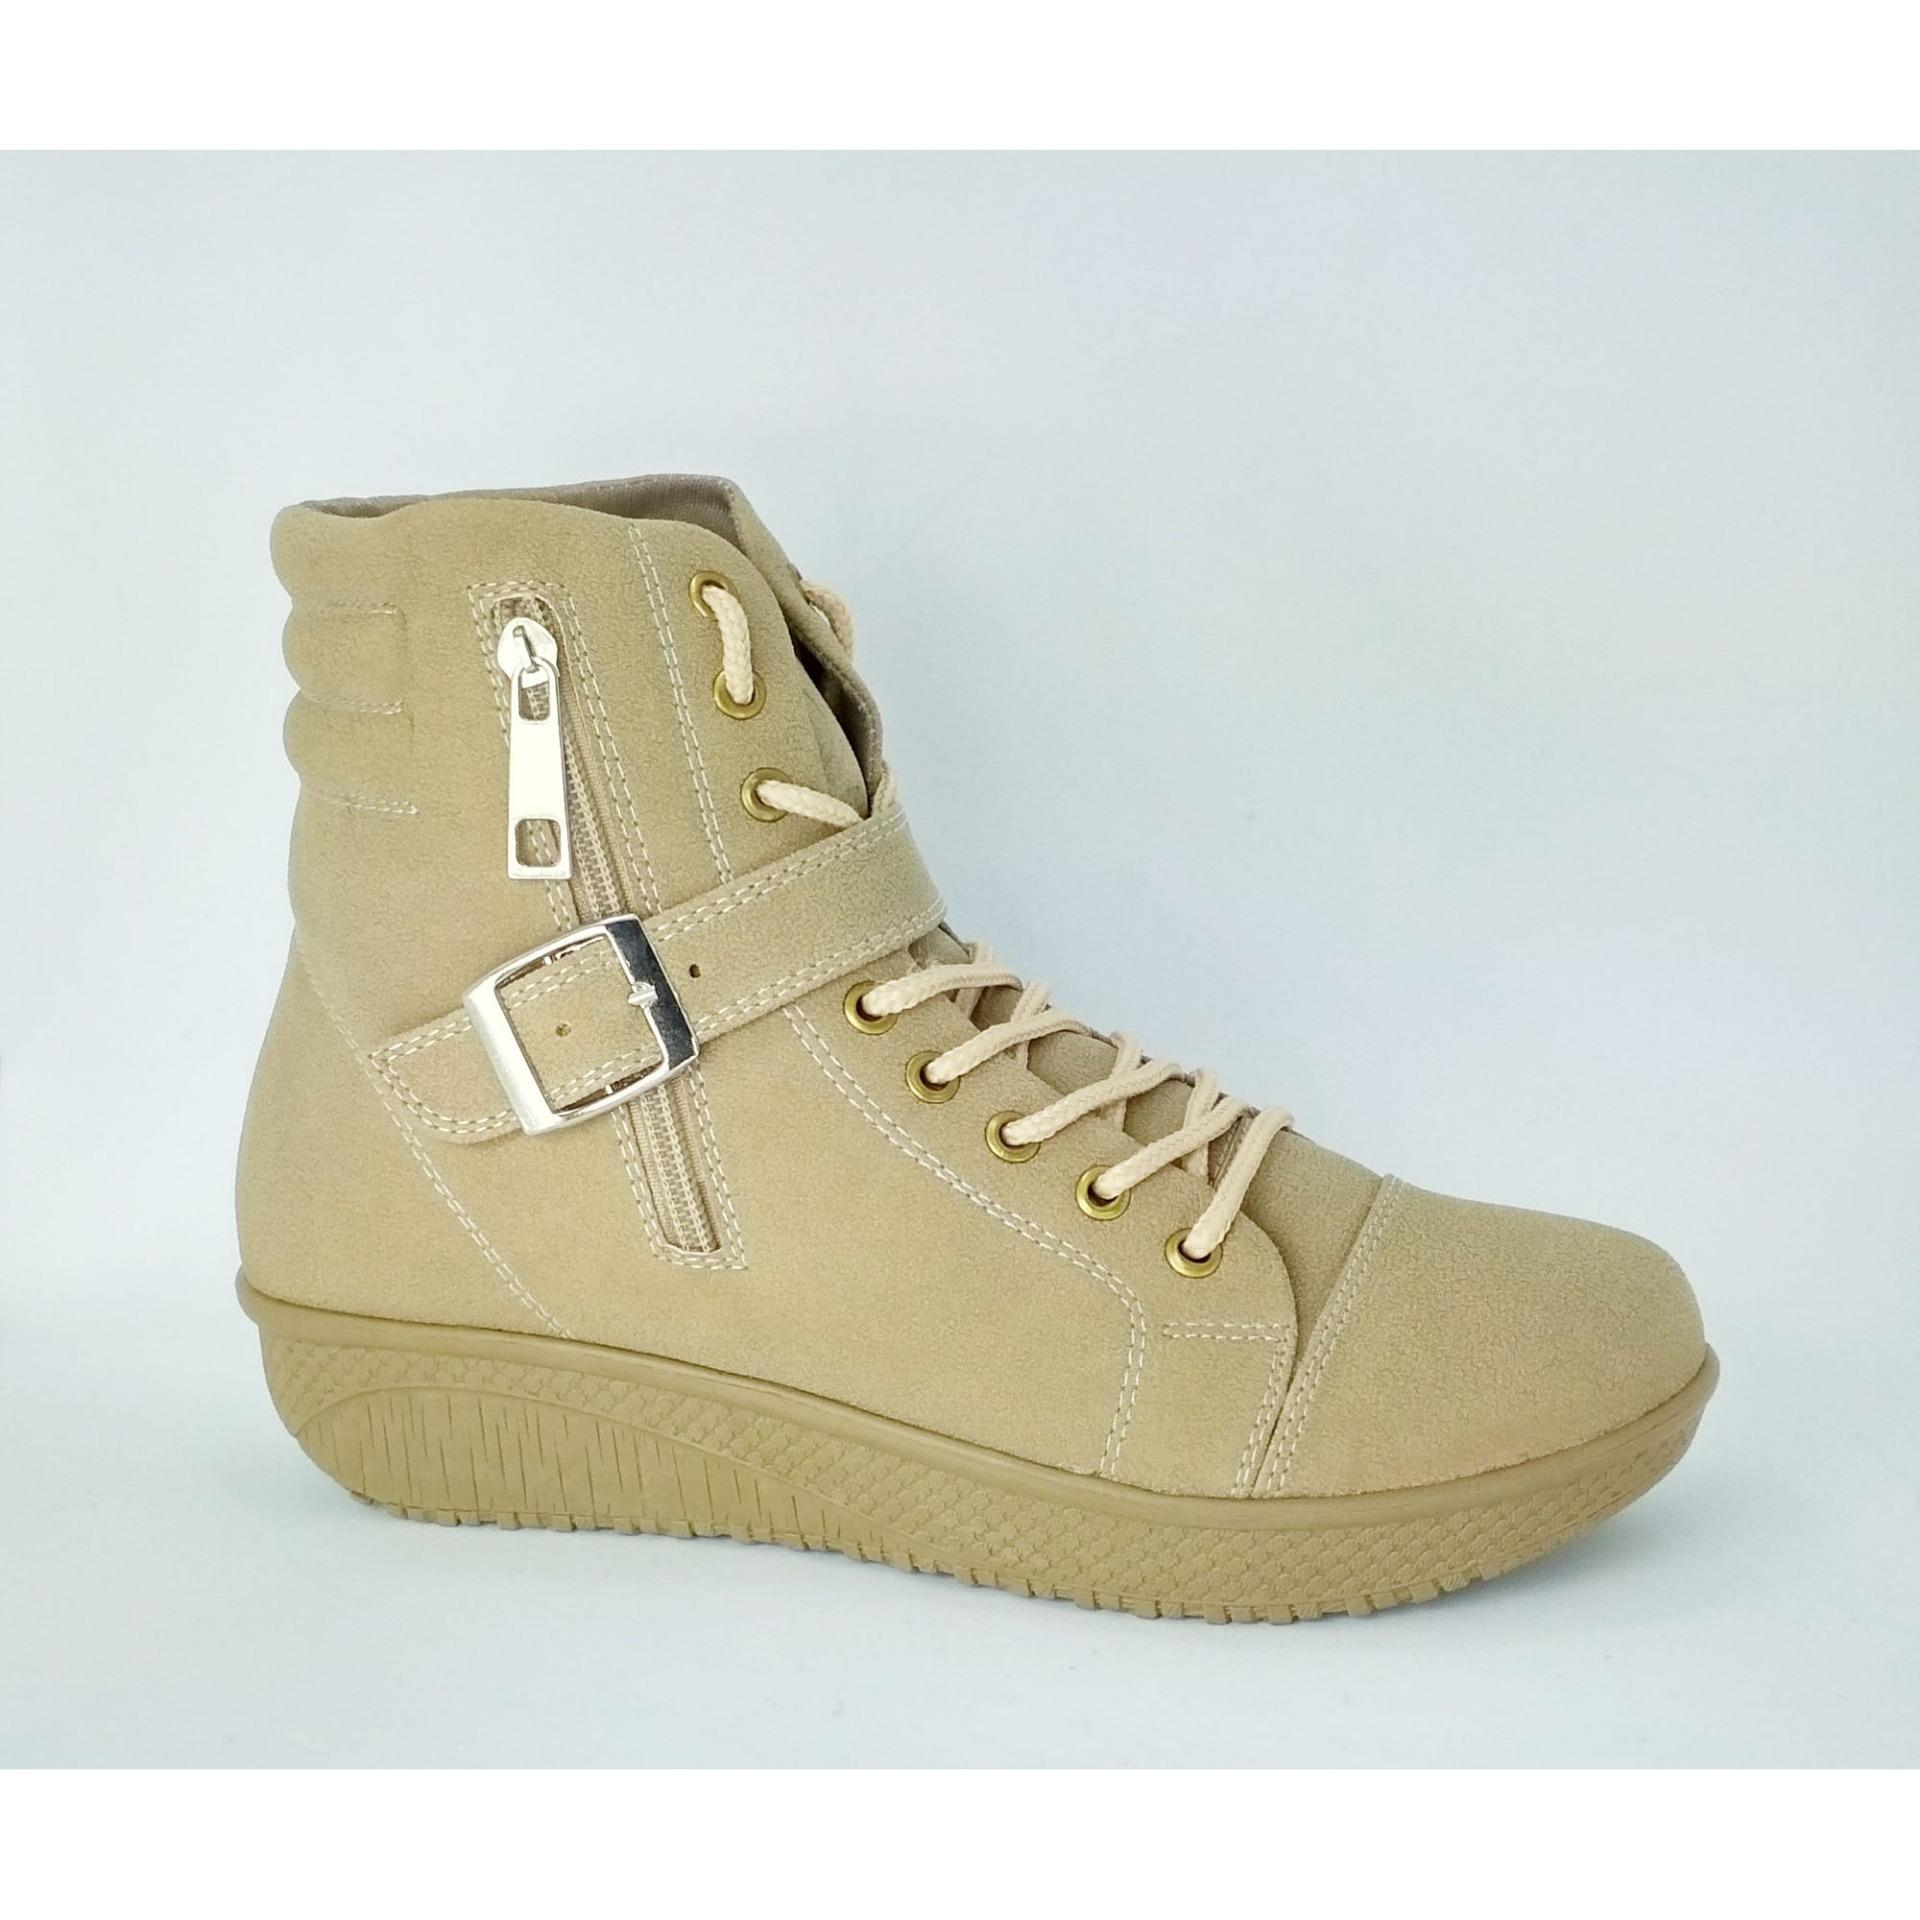 Aluz Sepatu Fashion Boot Wanita NFL 183-Modis -Korean Fashion (Cream)